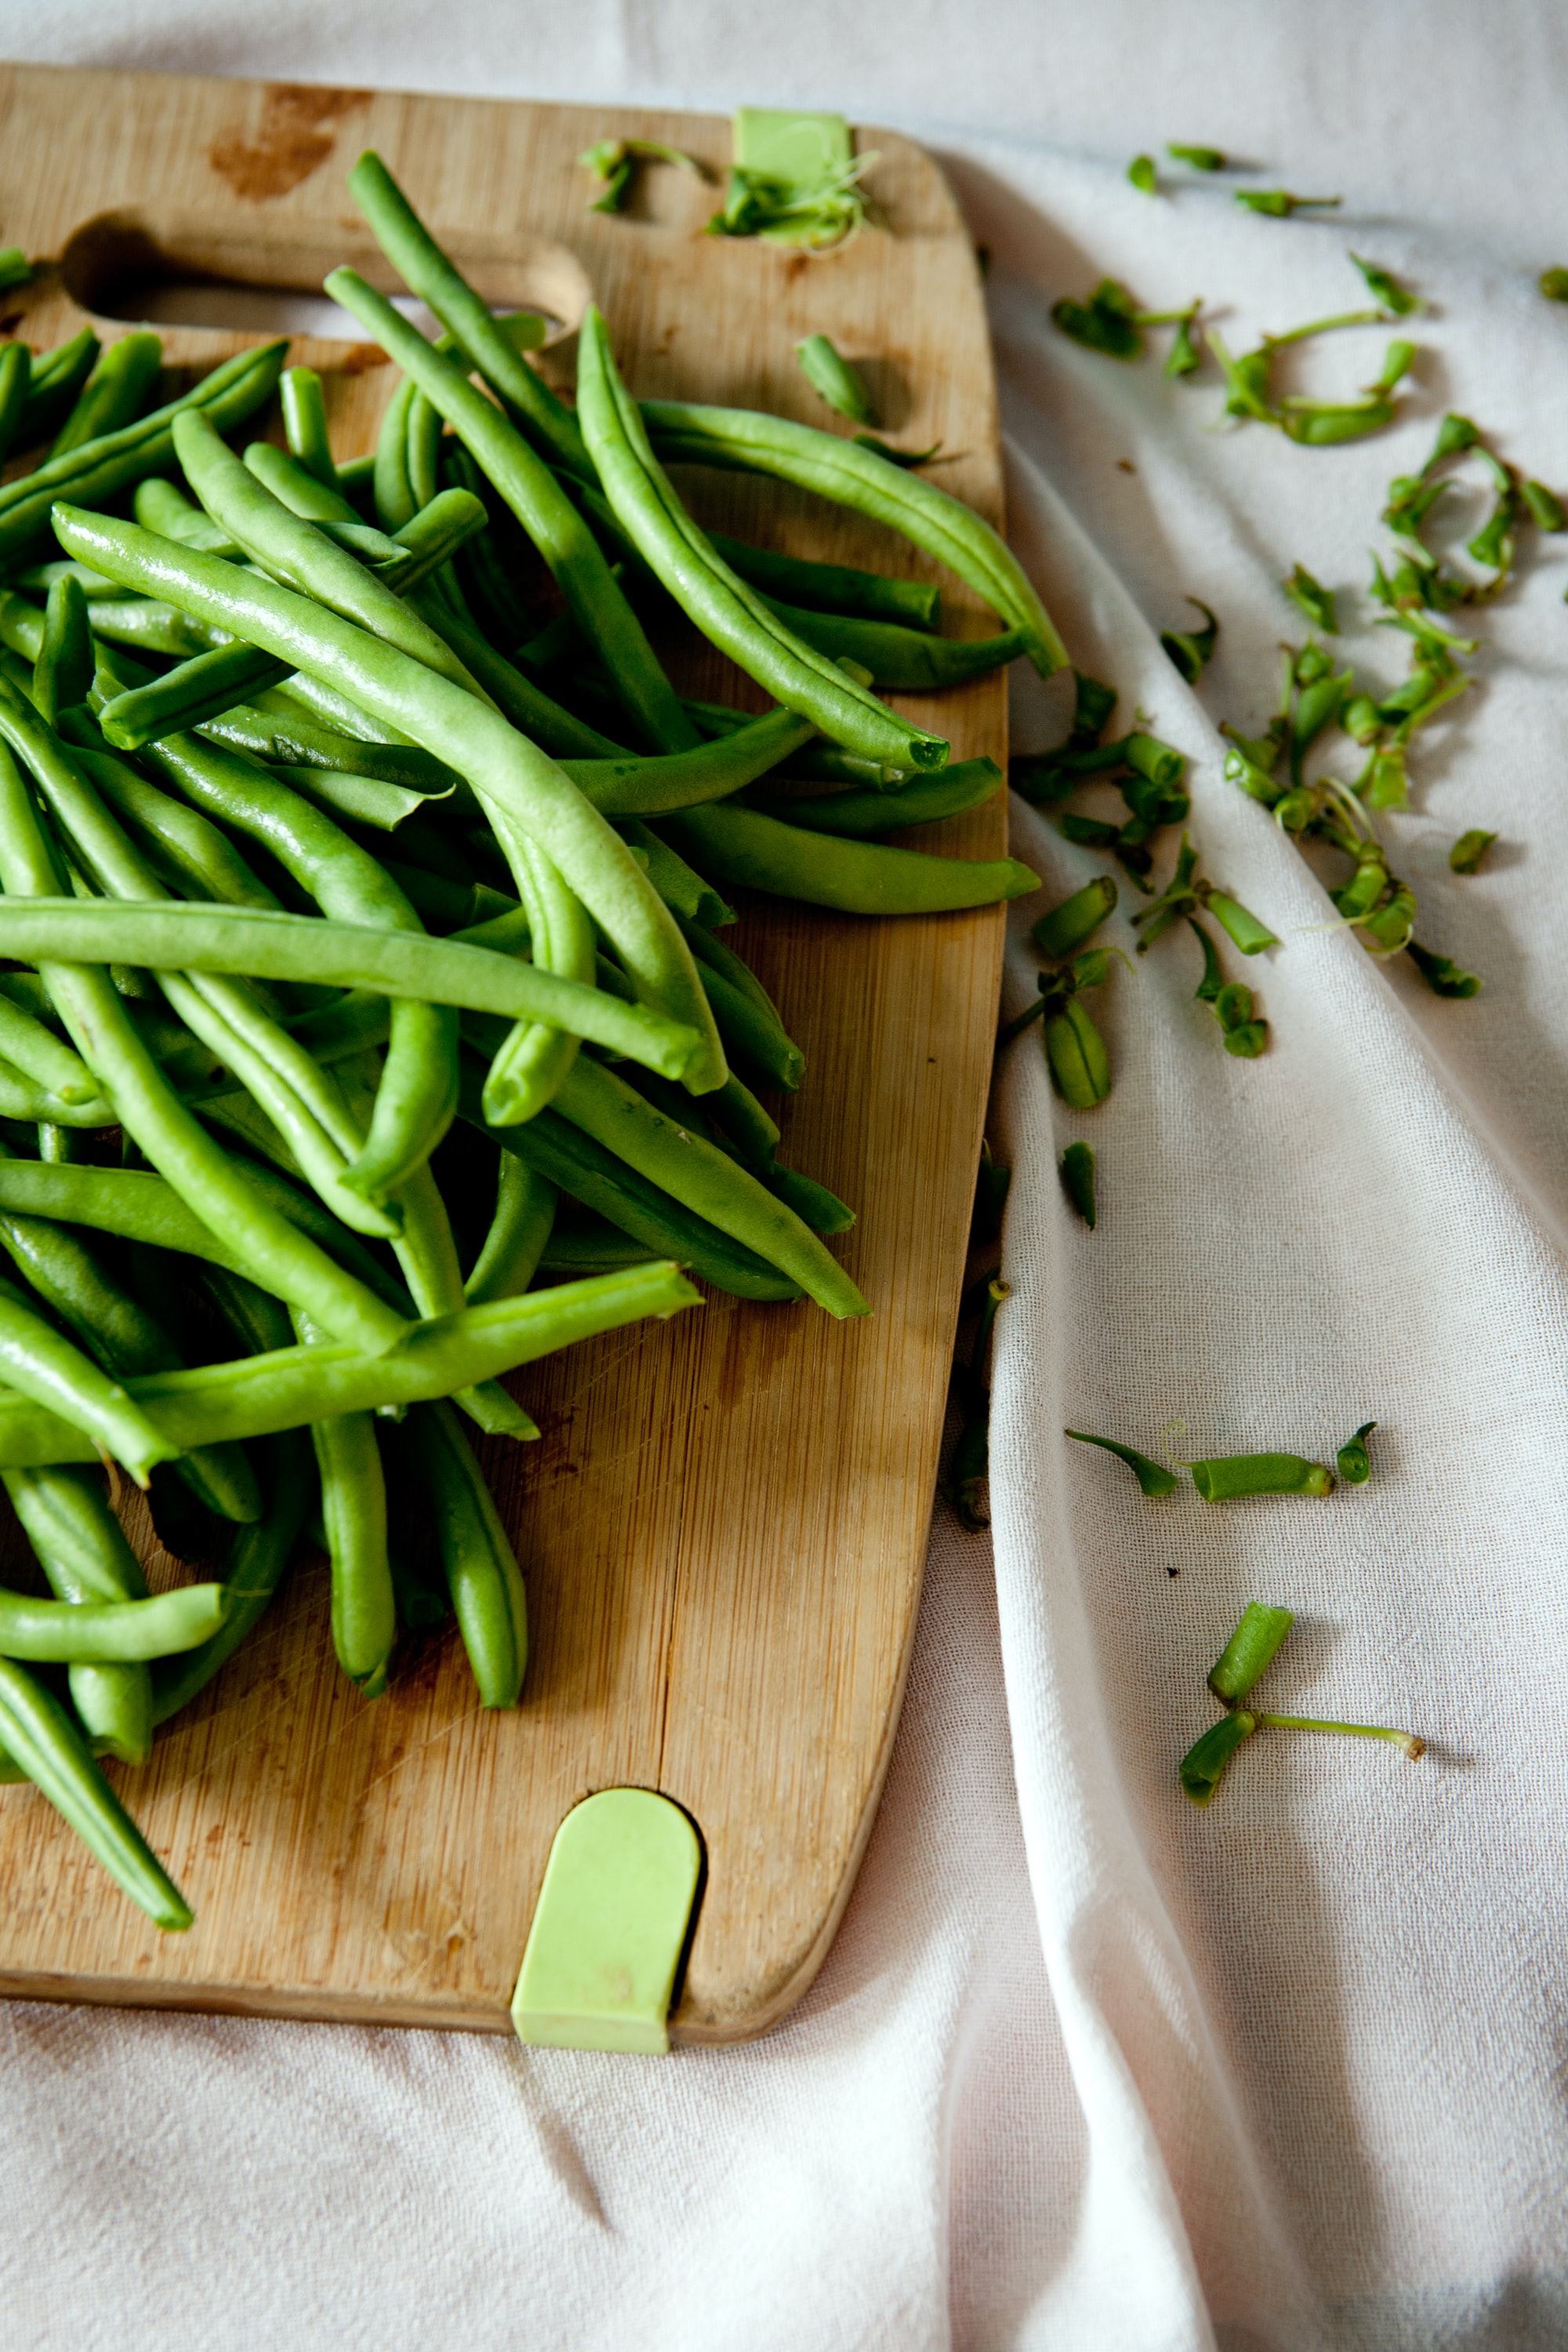 Fresh green beans prepared on a cutting board